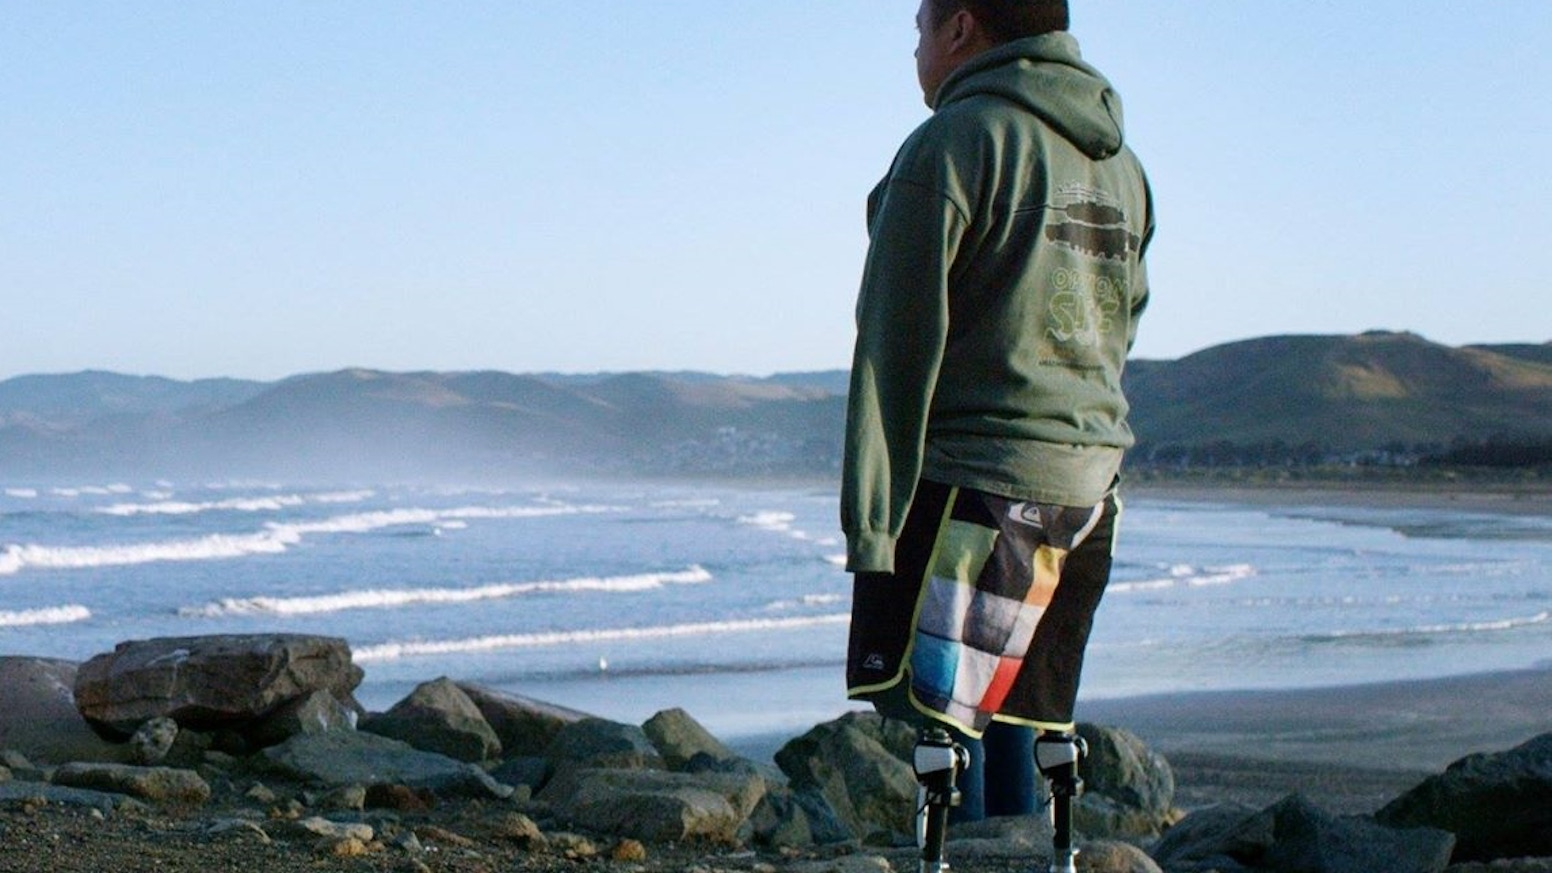 Resurface is a documentary about military veterans who surf to cope with PTSD and transform their lives.